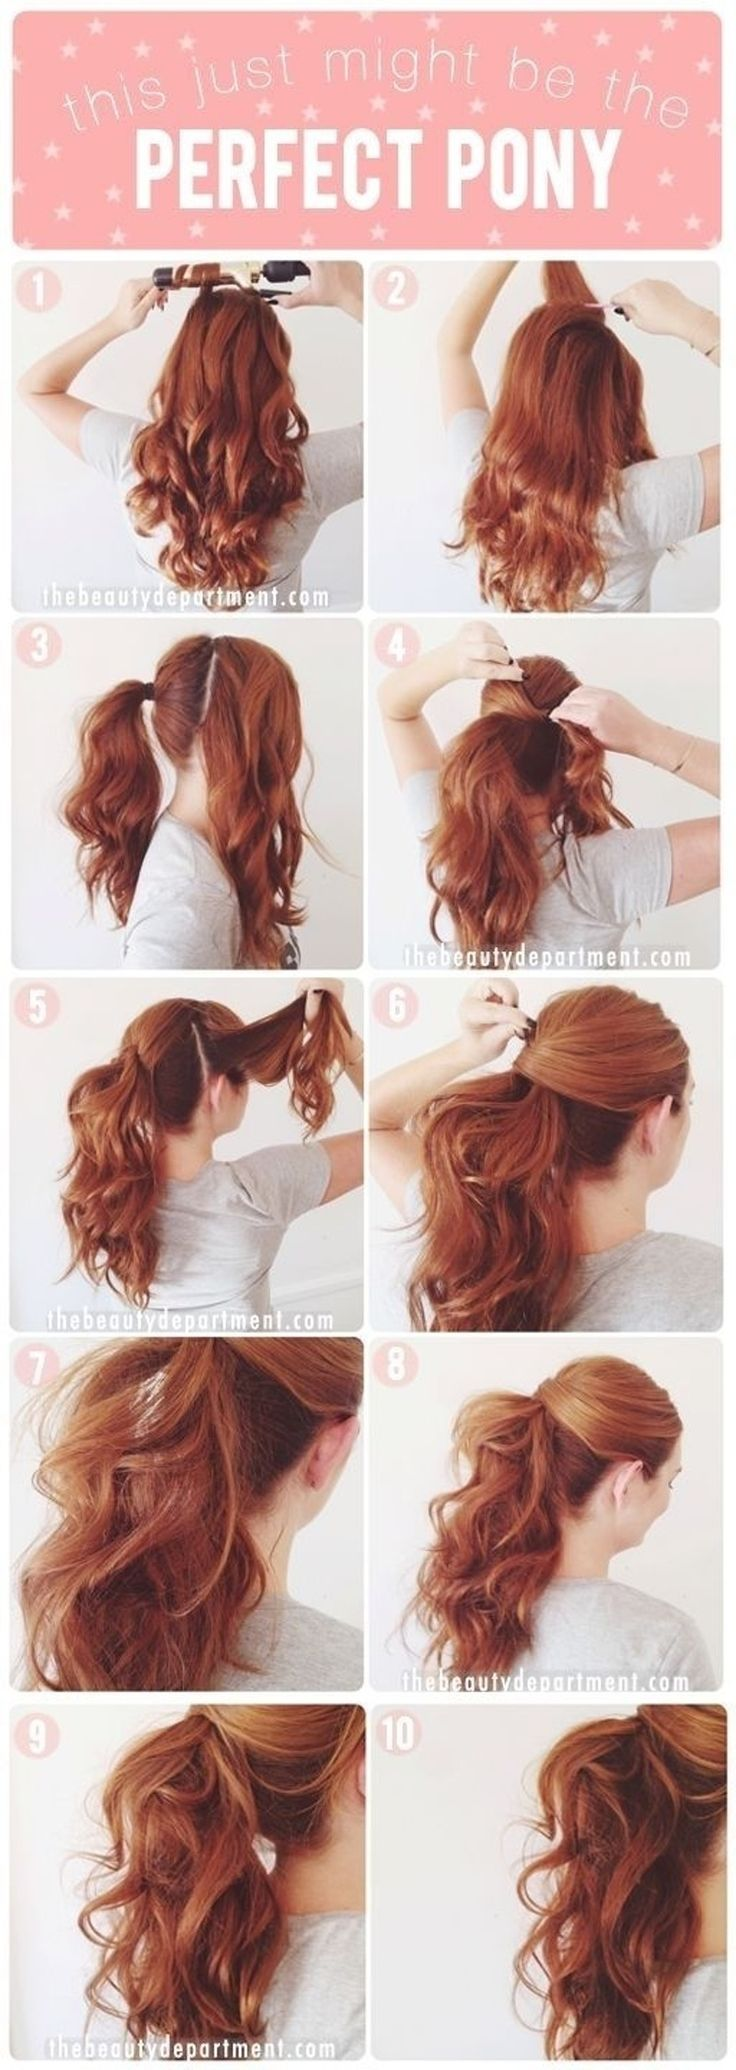 3. The #Perfect Pony - 16 Gorgeous Hair #Styles for Lazy Girls like Me ... → Hair #Twist